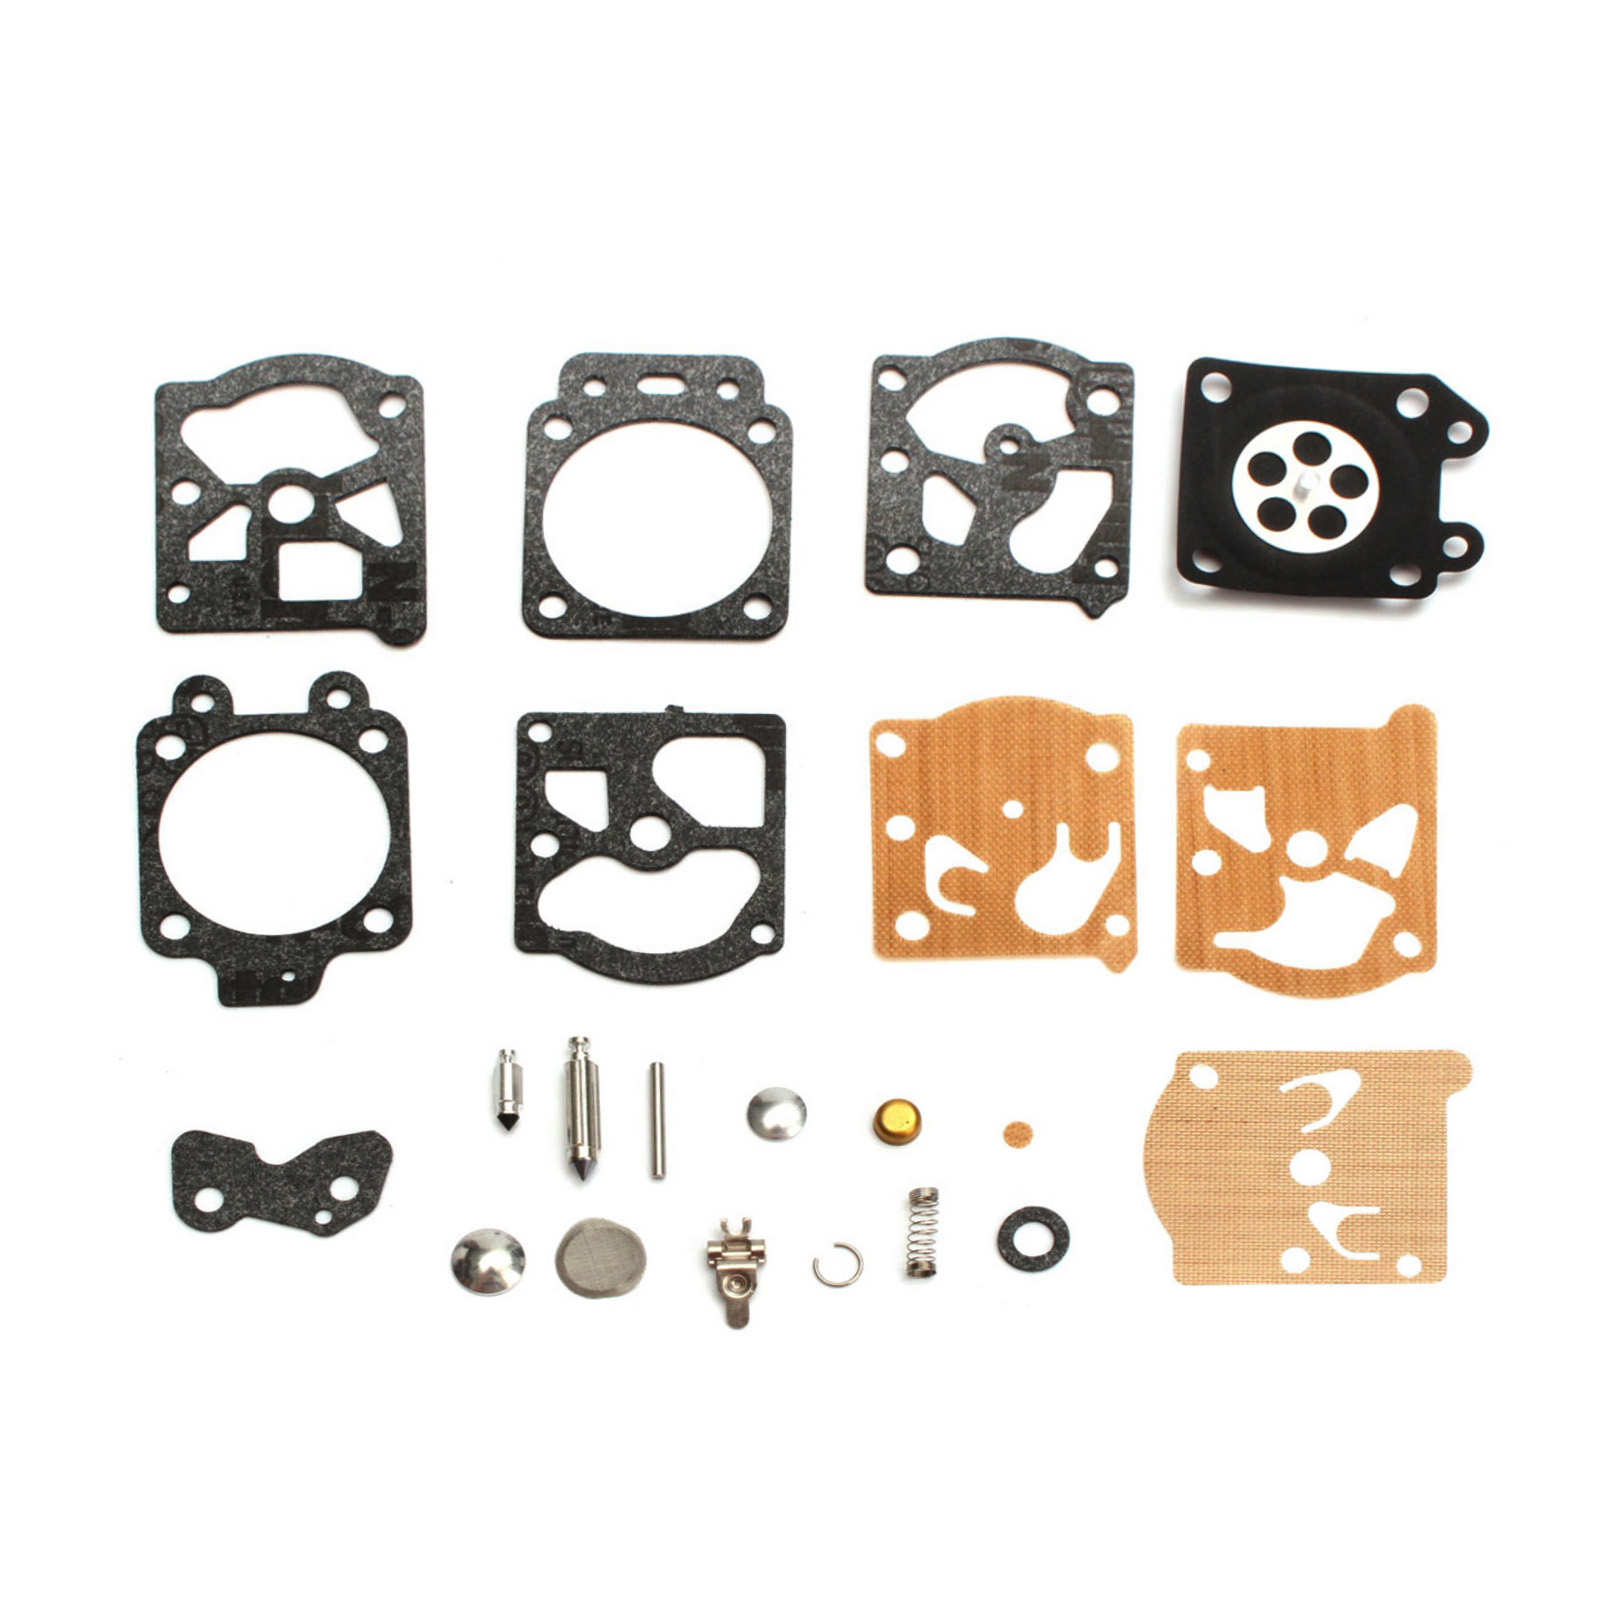 Walbro Carburetor Repair Kit K20-WAT / Fits Poulan WT-628-1, WT-629-1, WT-639-1 & Other Chainsaw Carburetors